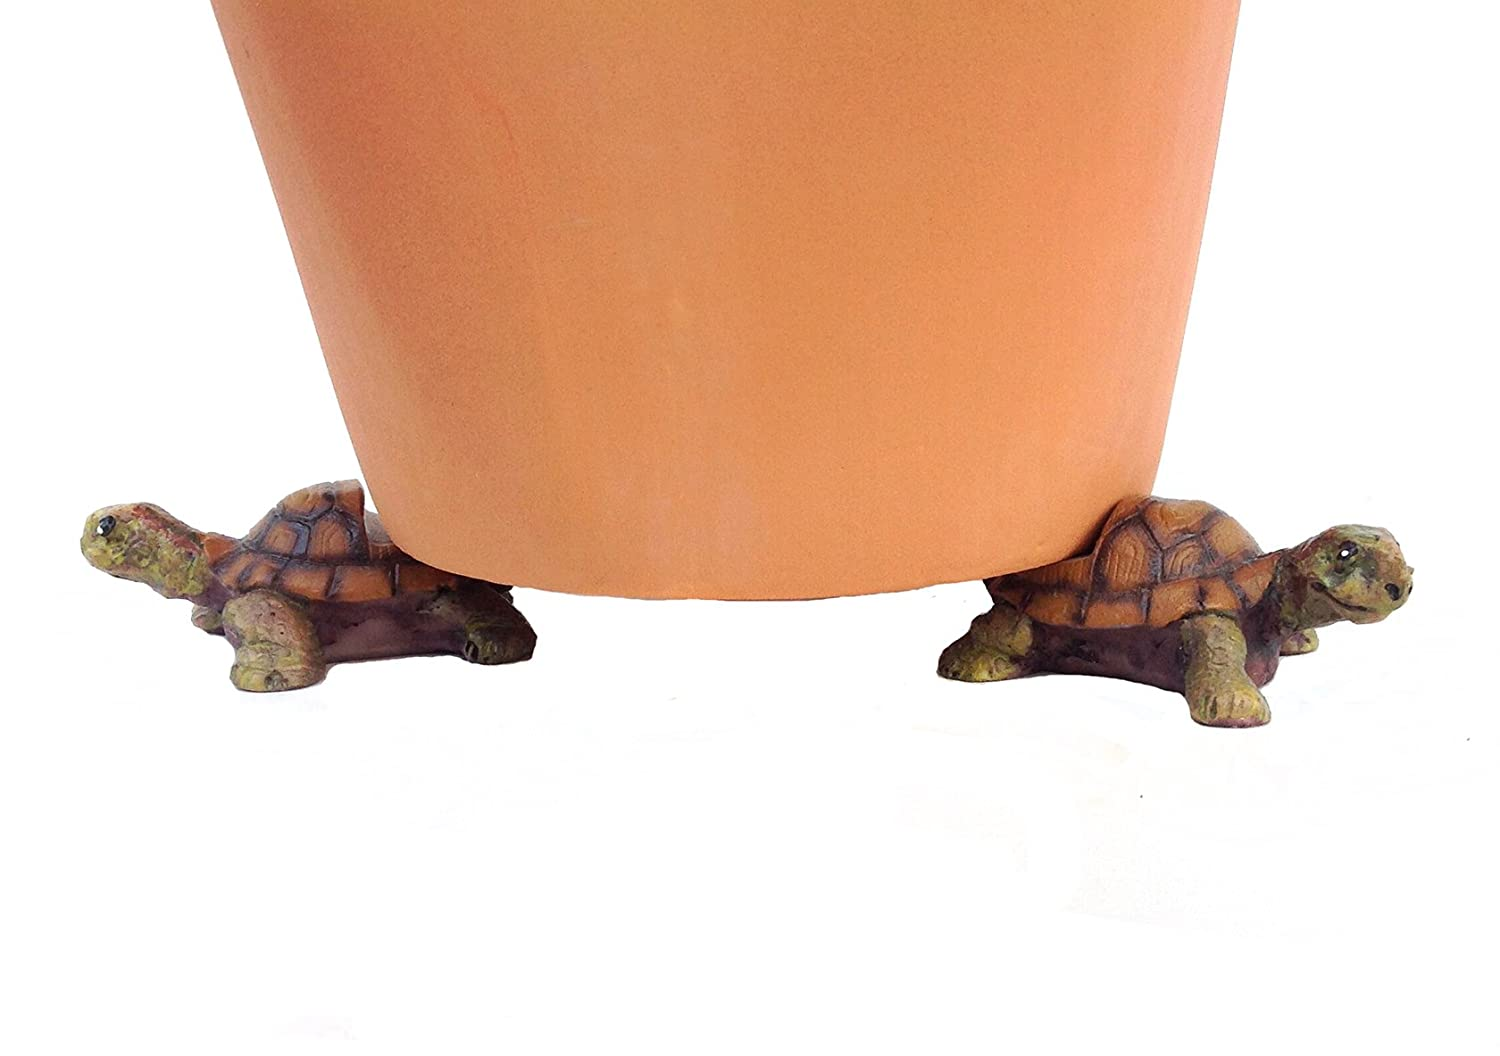 Set of 3 Poly Resin Turtle Shaped Pot Feet or Planter Risers Small Size Turtle Shape Each Measures 2.25 inches Long 1.25 inches Tall